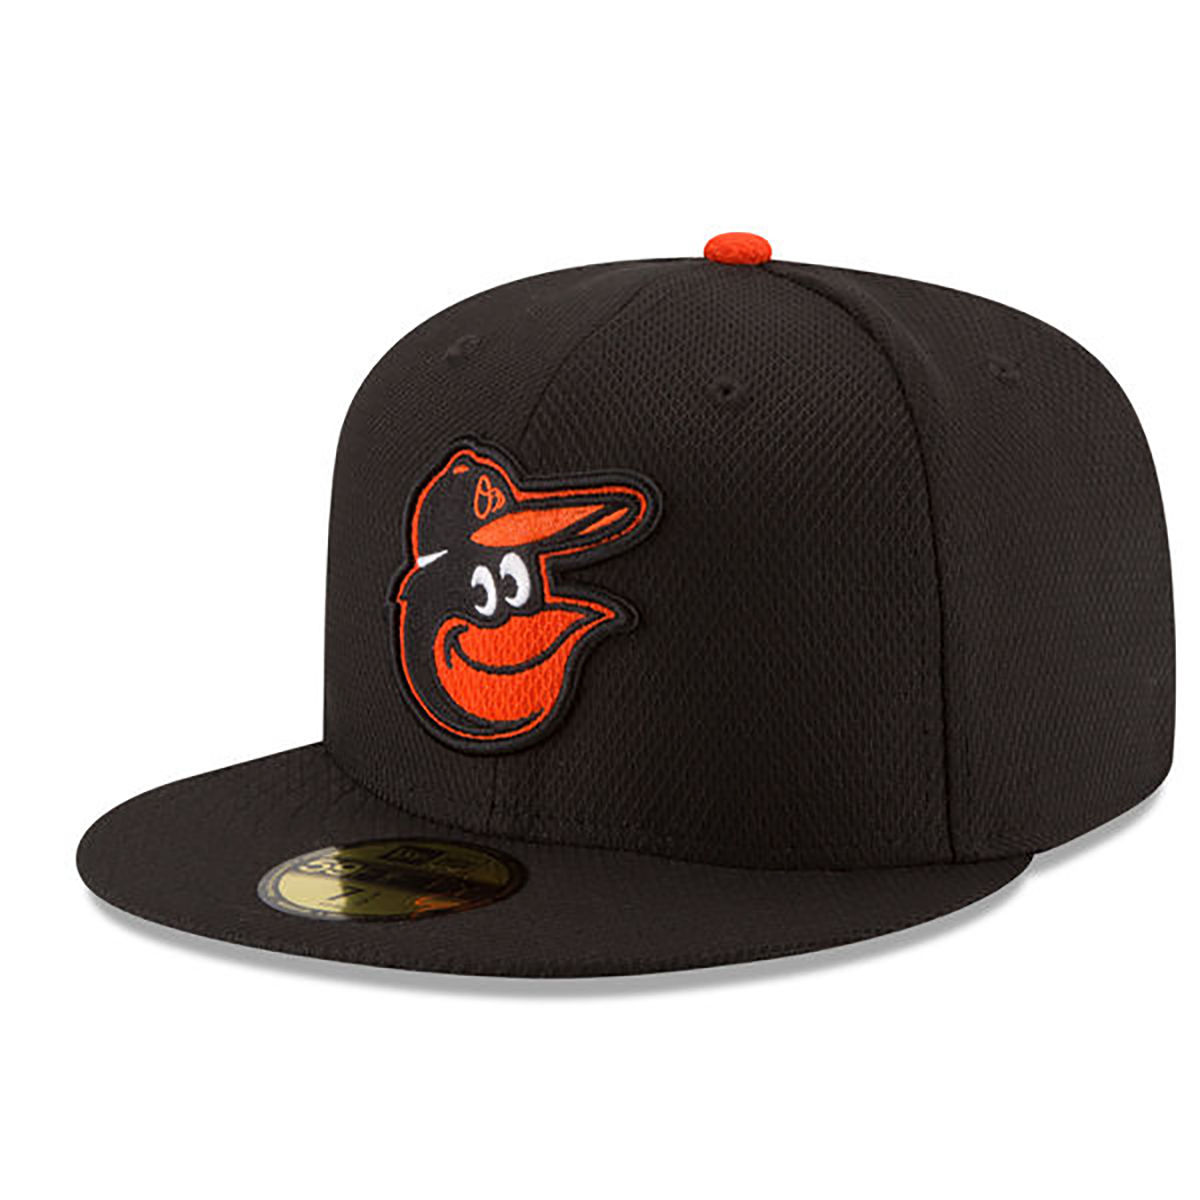 Baltimore Orioles Adult New Era 59FIFTY Fitted Hat-Road